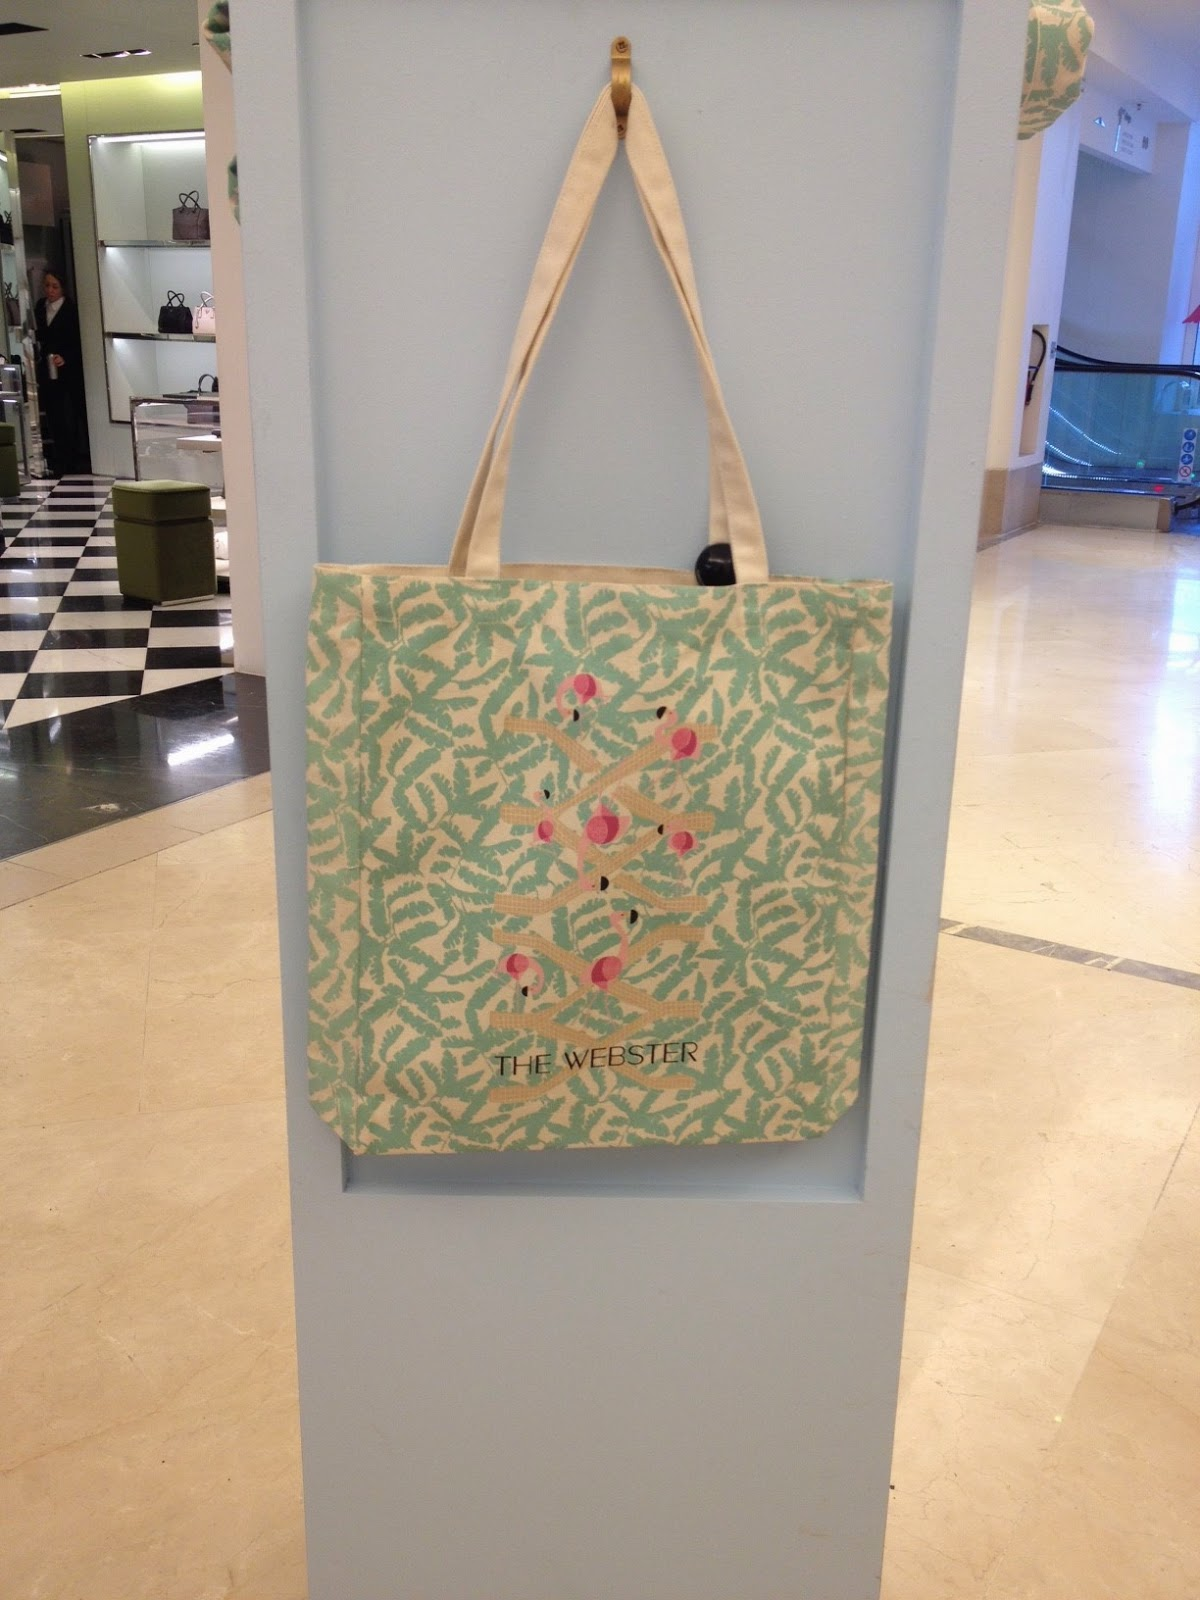 Le Bon Marché/ Le Webster collaboration tote bag